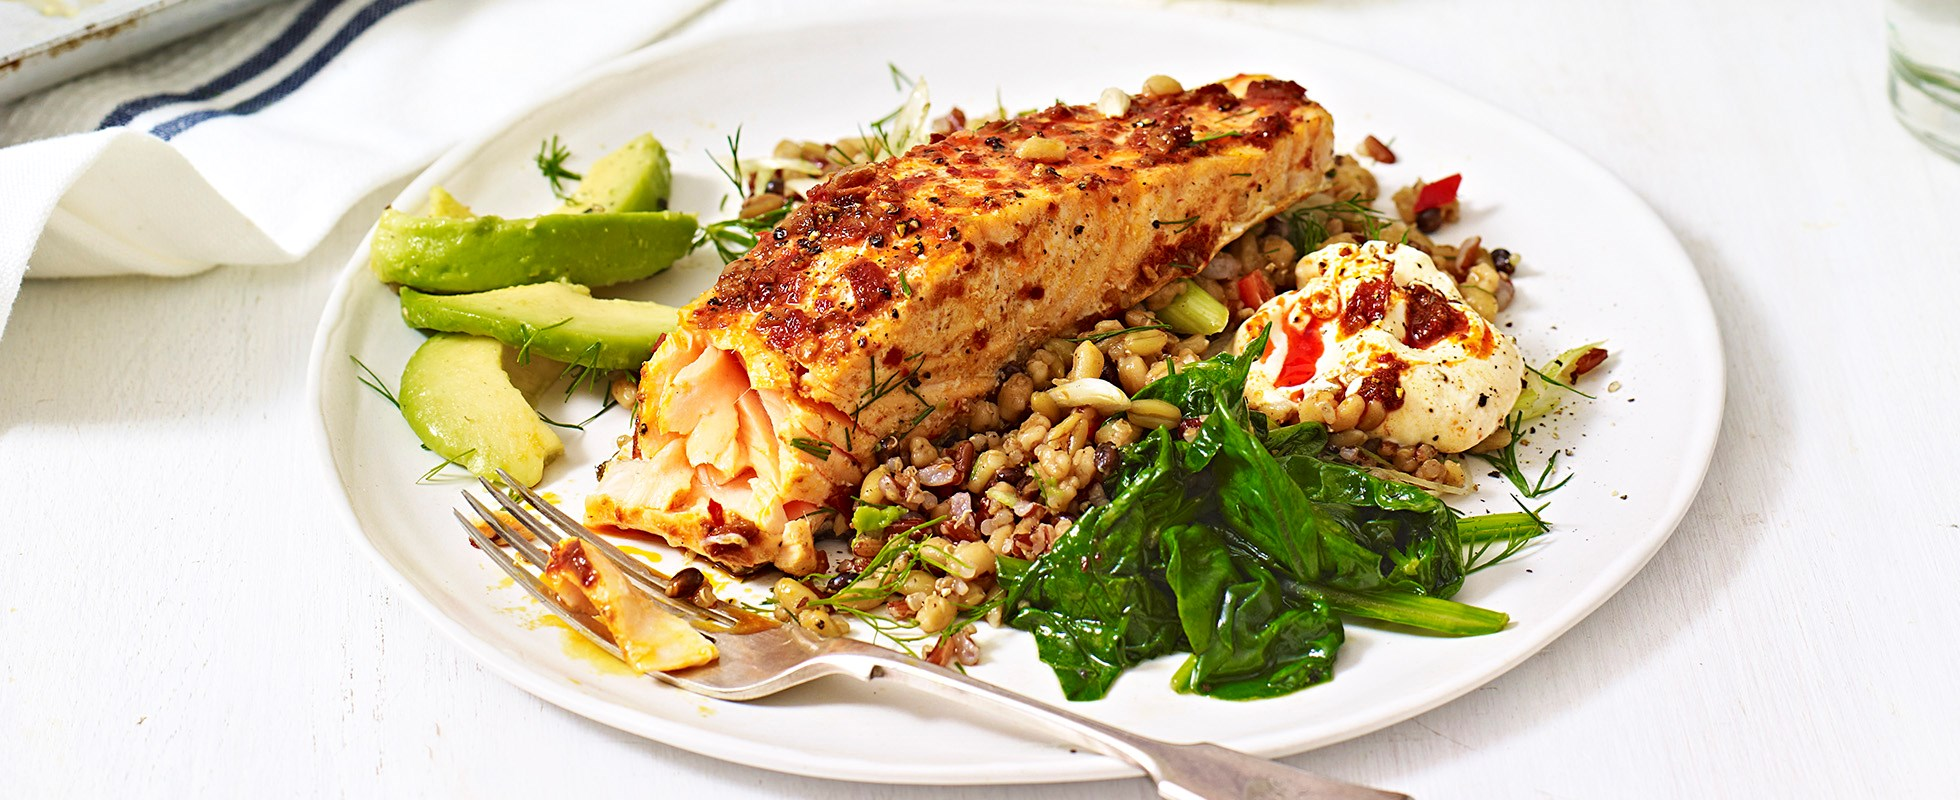 Harissa salmon with mixed grains and spinach - best quinoa recipes